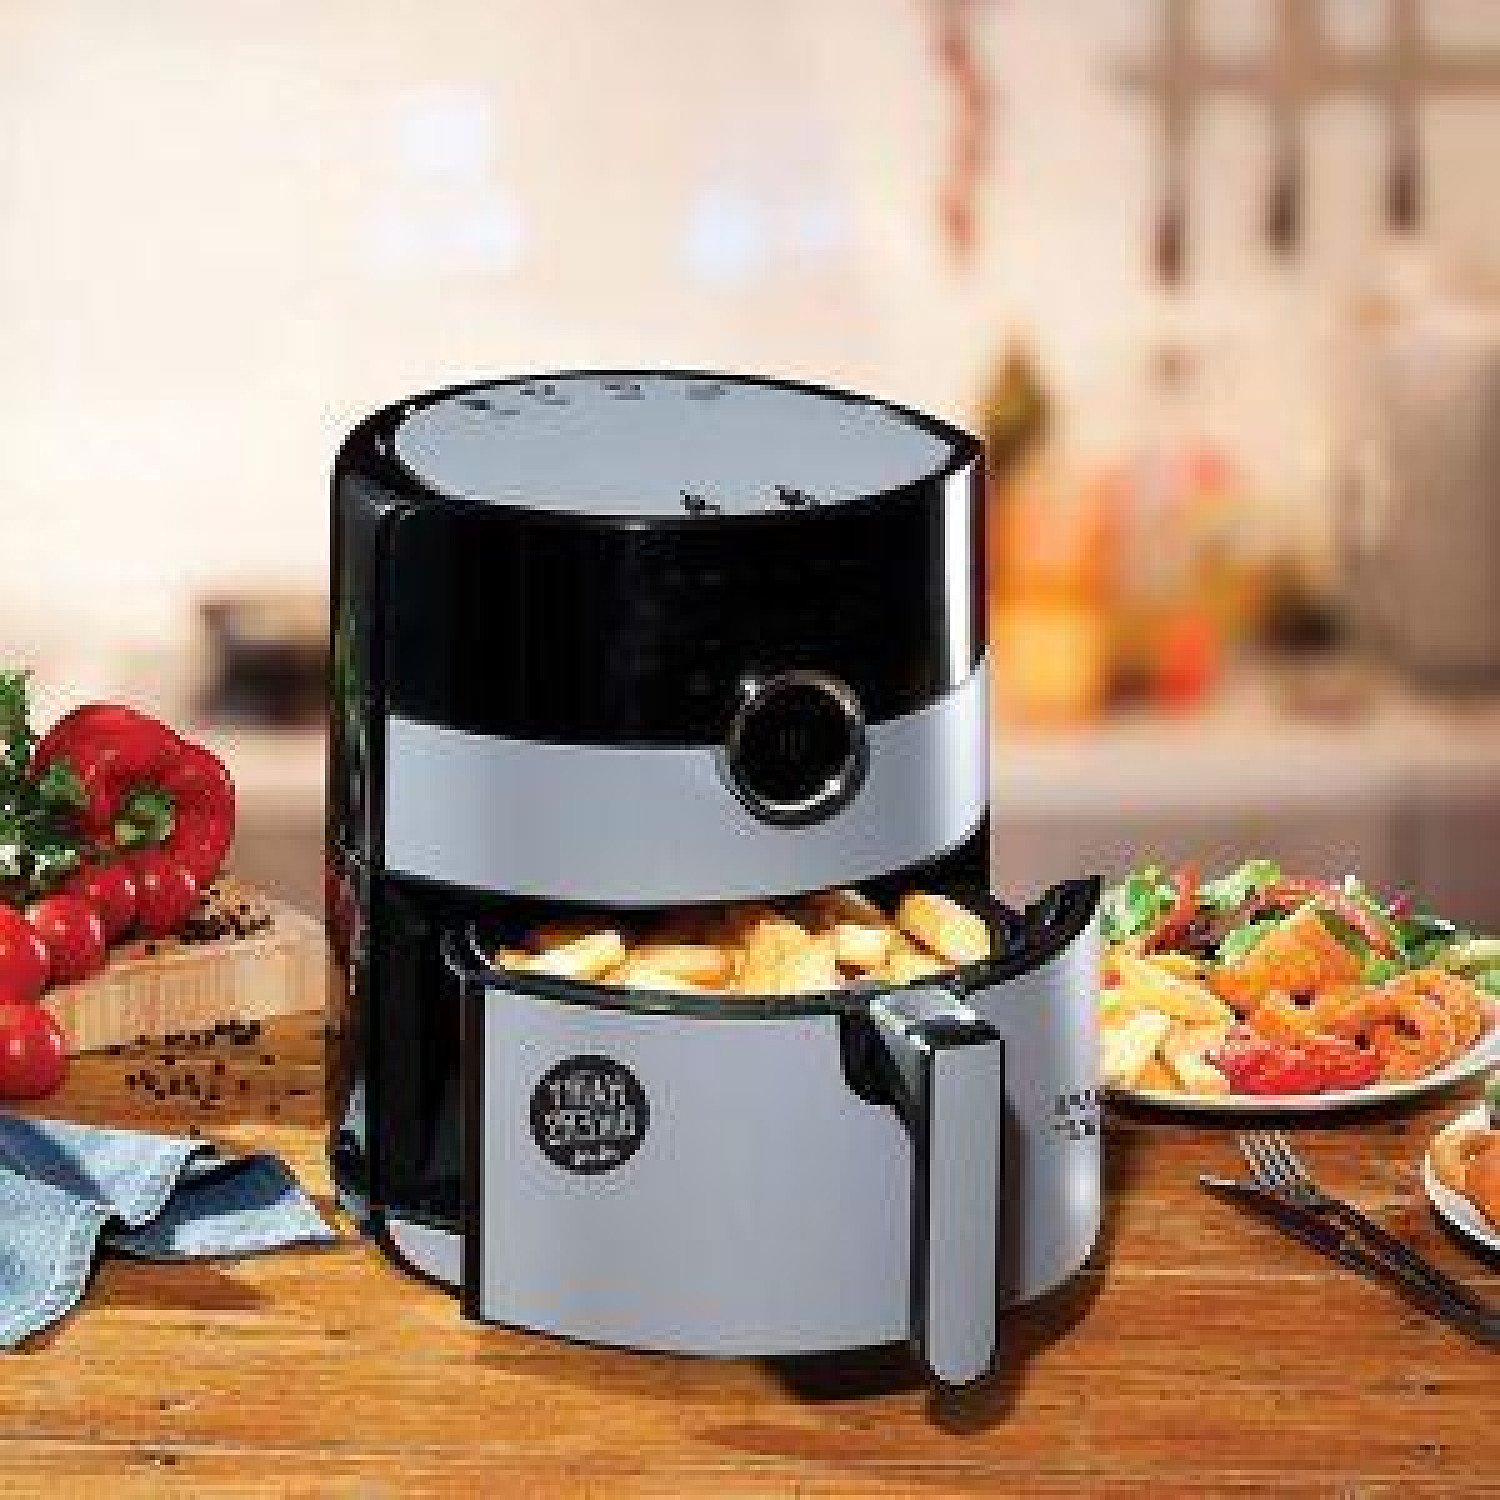 Hairy Bikers 4.5L Digital Air Fryer Low Fat Oil Healthy Cooker Oven Free Postage